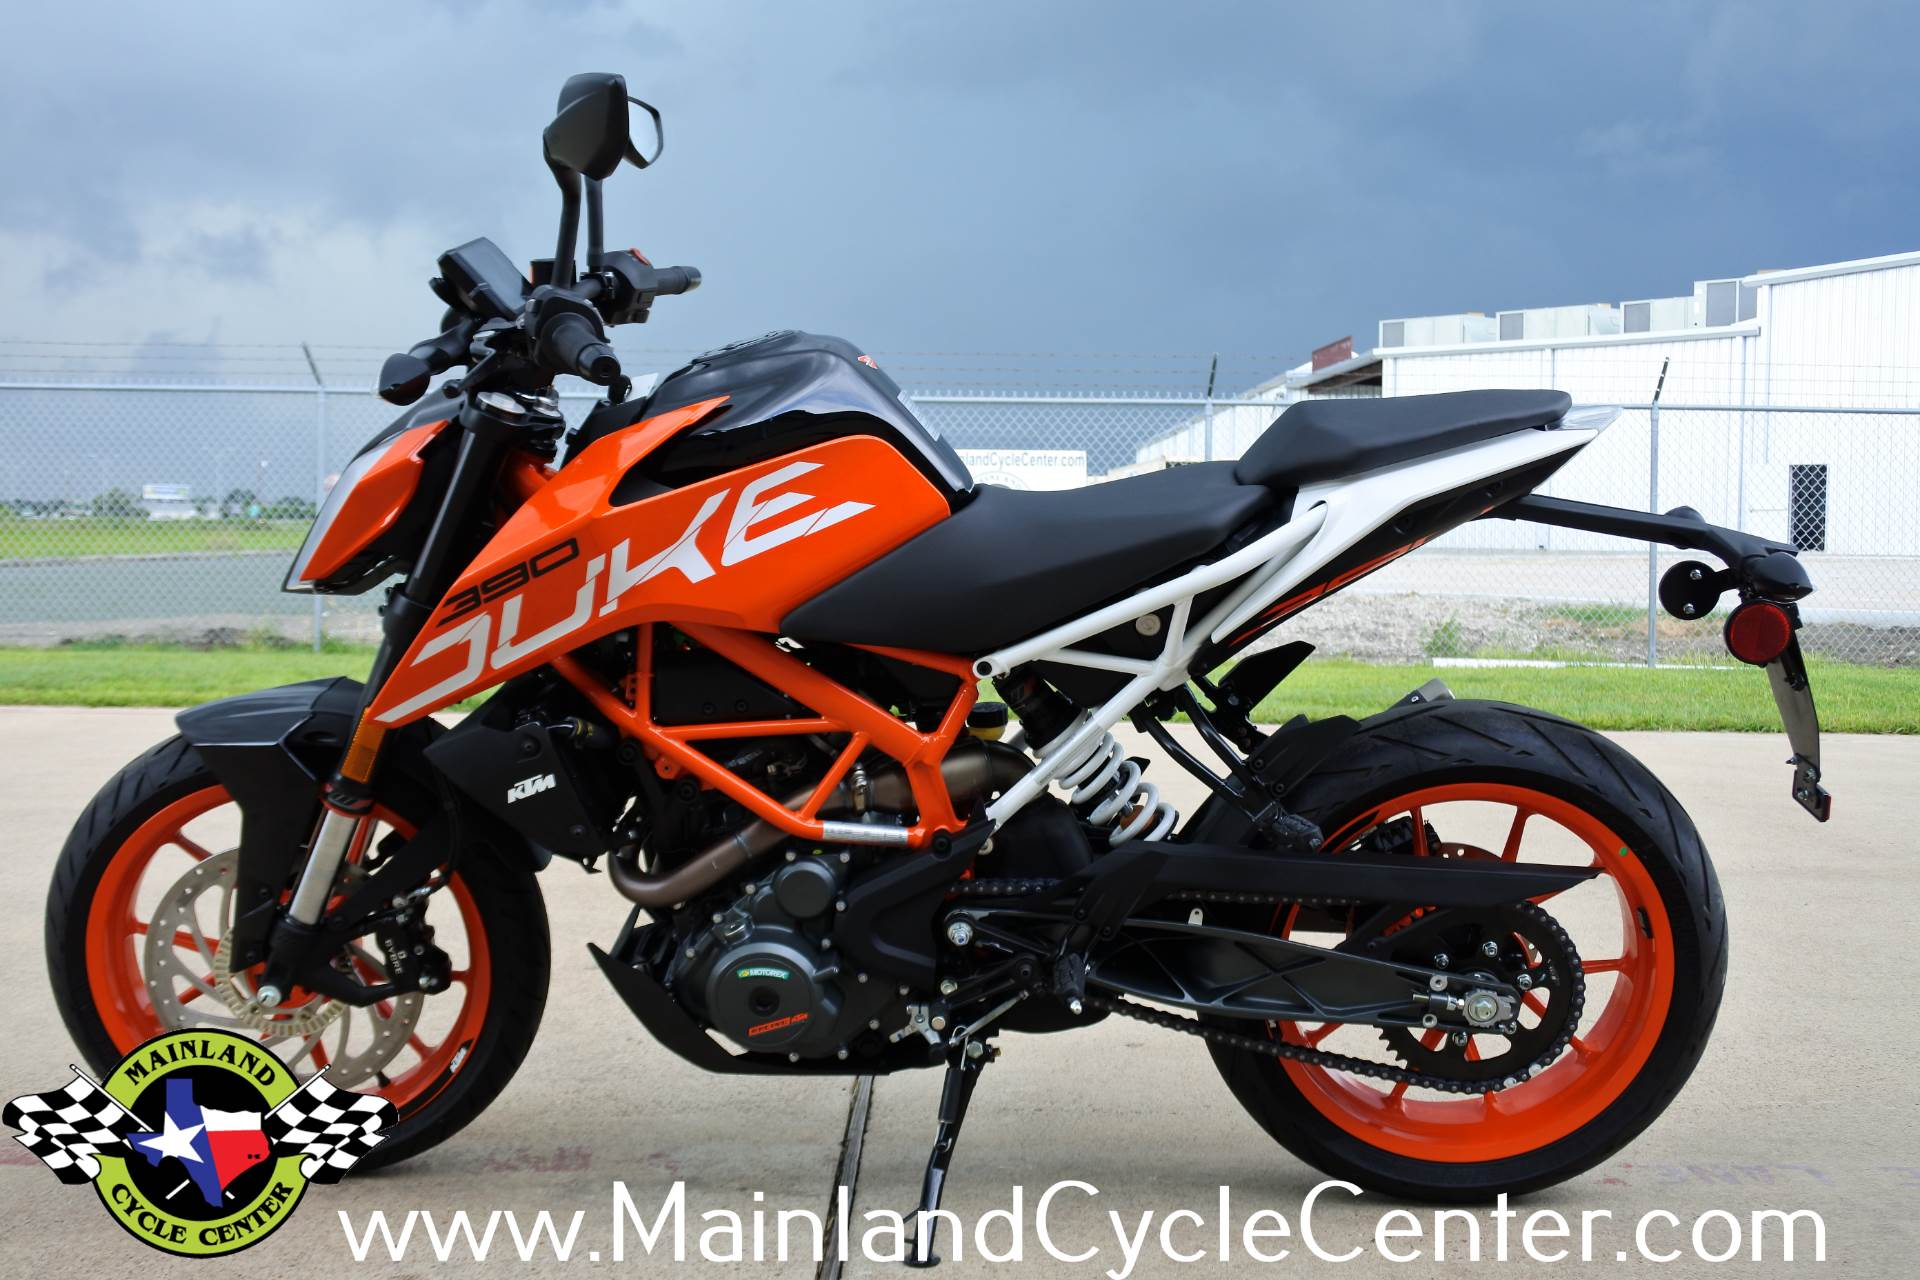 2018 KTM 390 Duke for sale 391